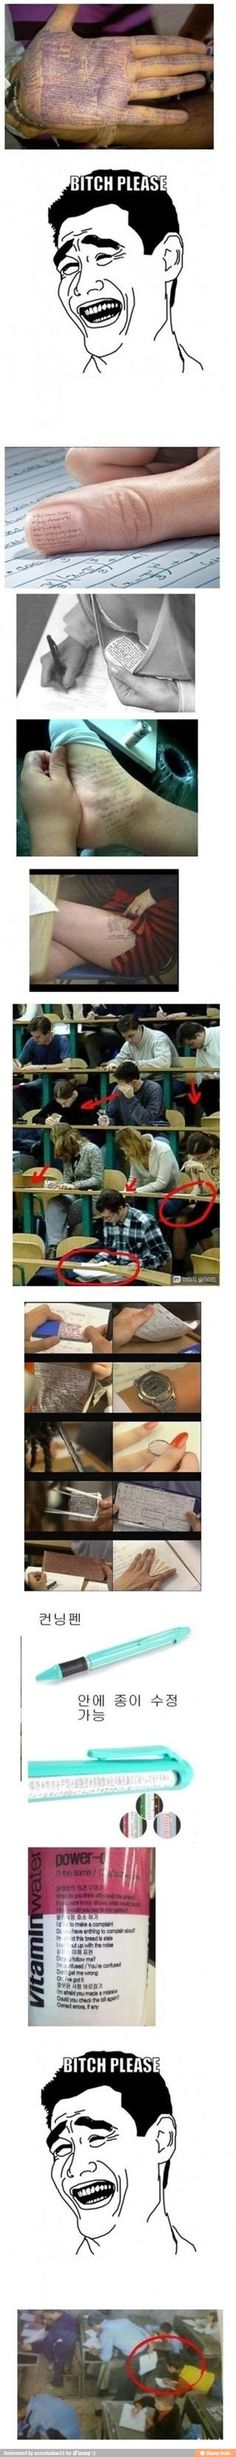 haha ohh the lengths one will go to for cheating on tests.